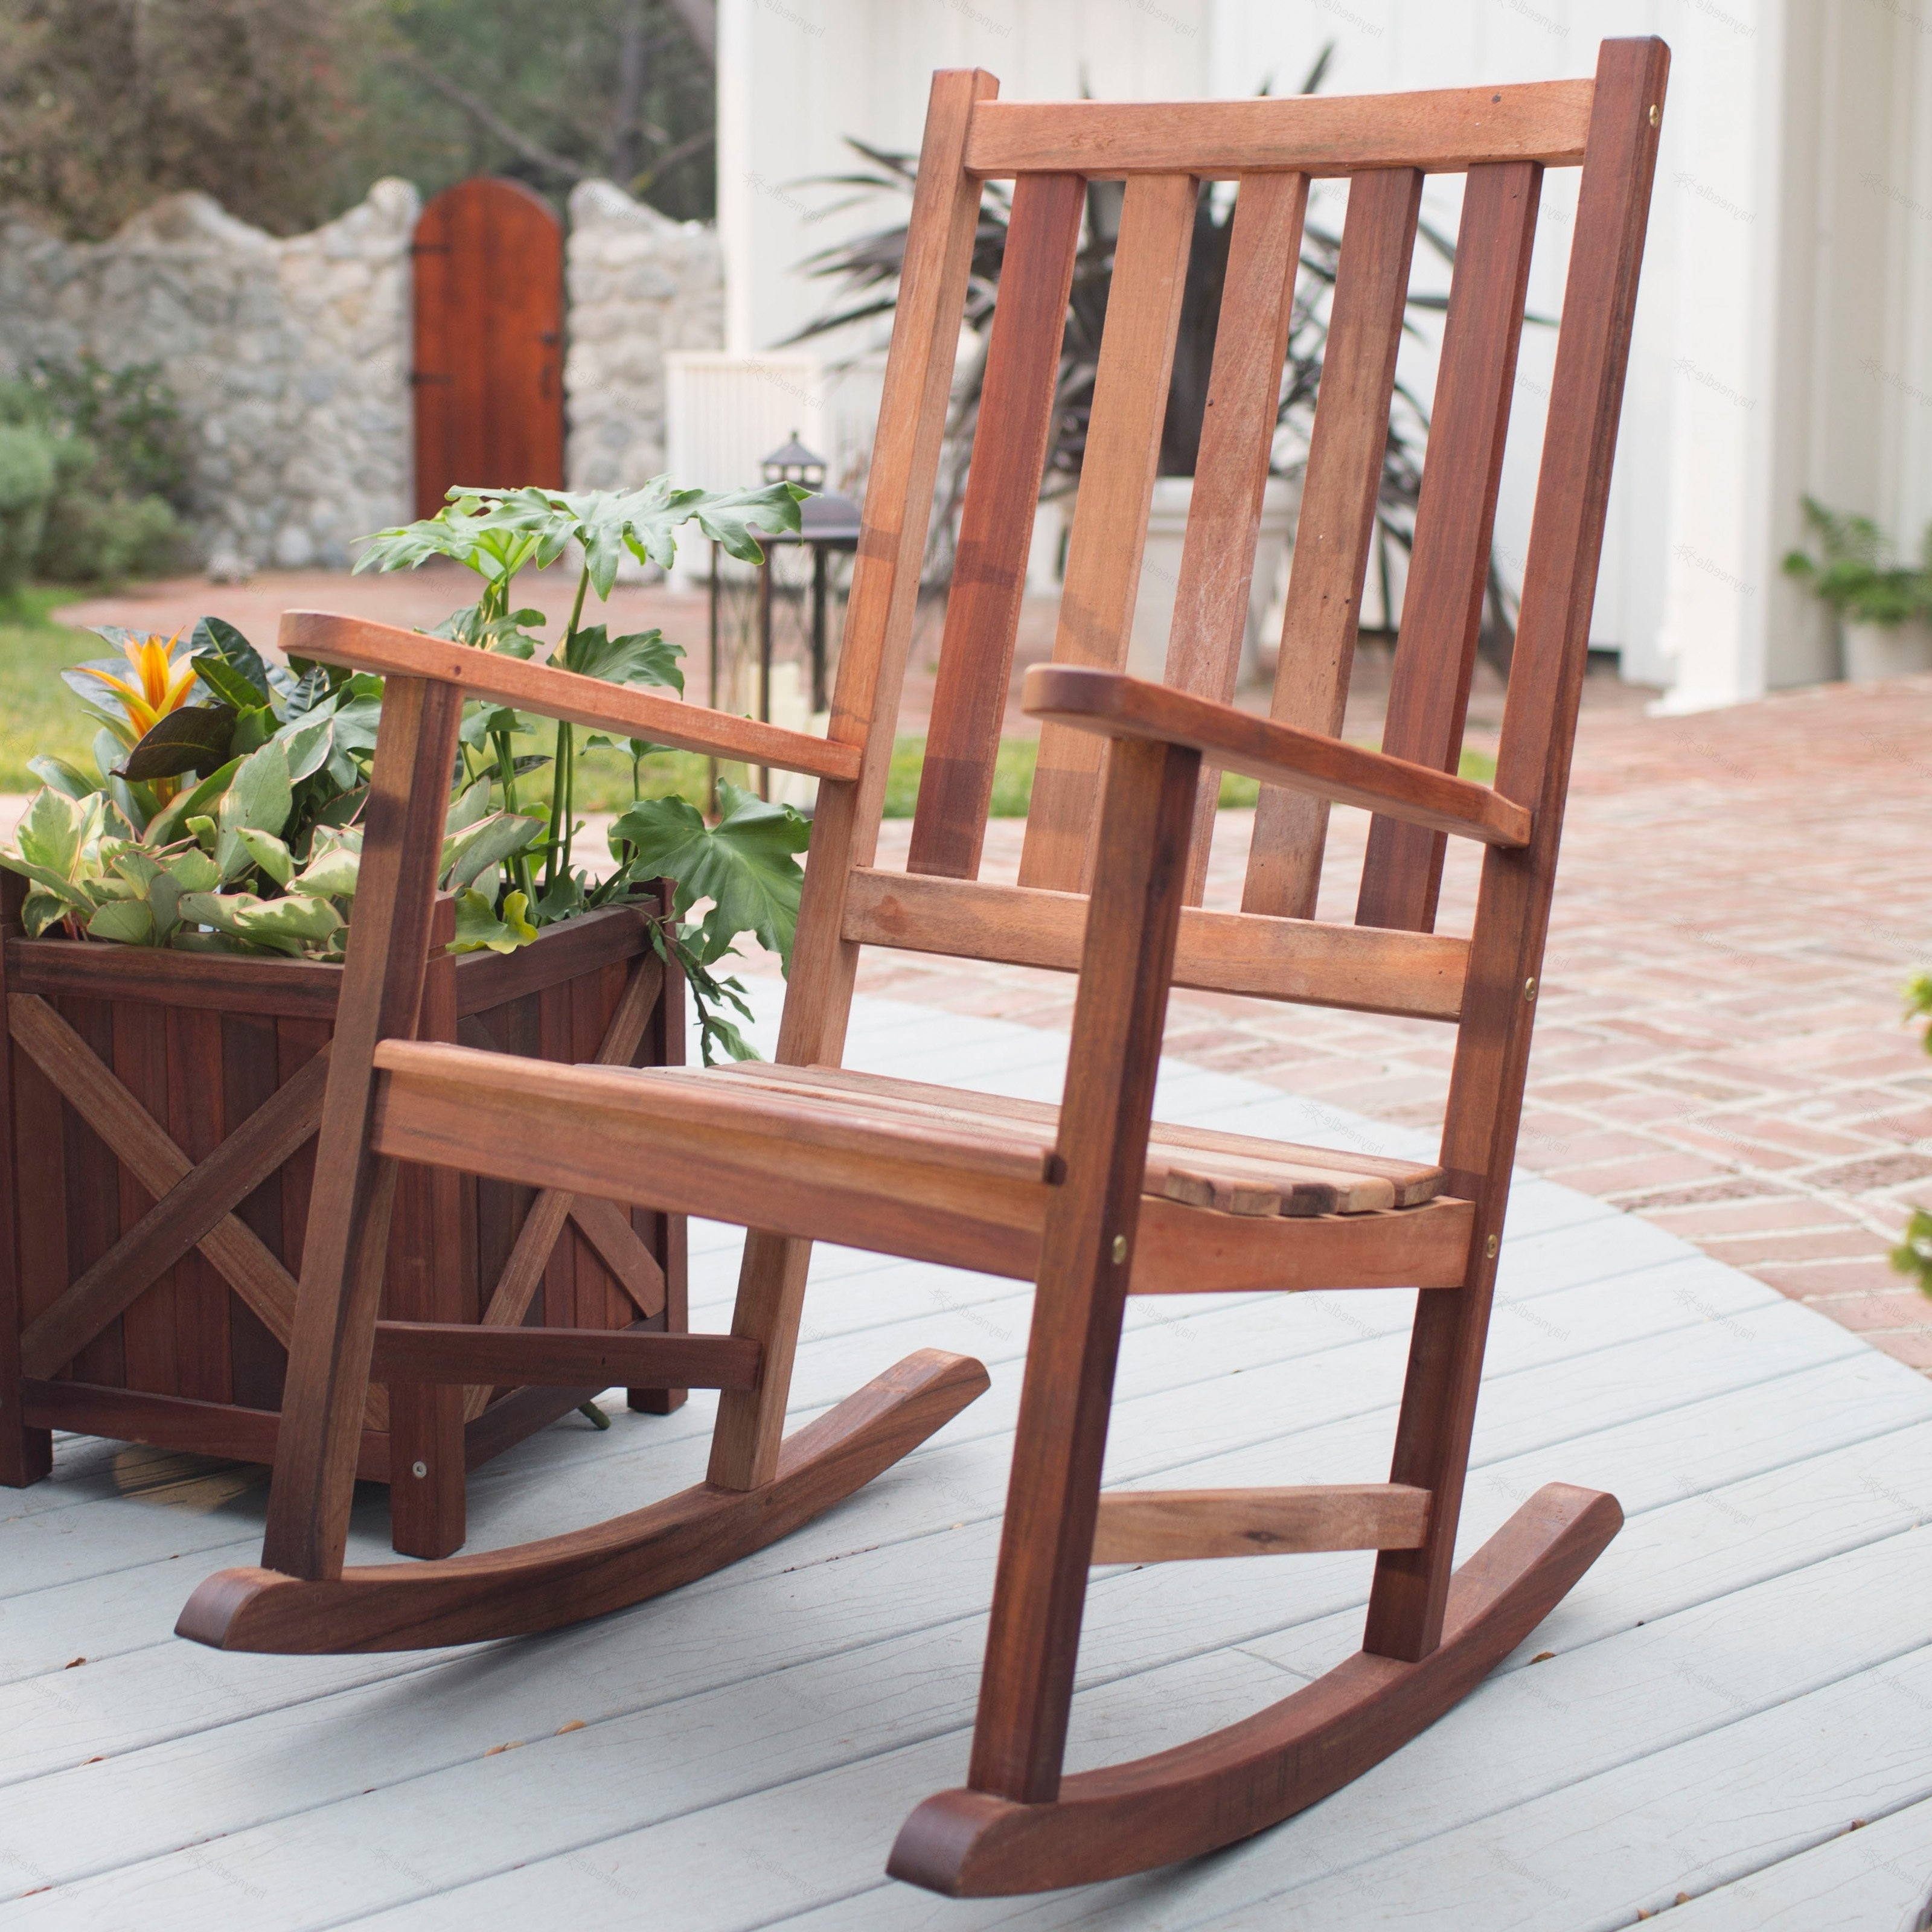 Most Popular Wooden Patio Rocking Chairs Inside Decorating Black Outdoor Rocking Chairs Black Patio Rocking Chair (View 12 of 20)